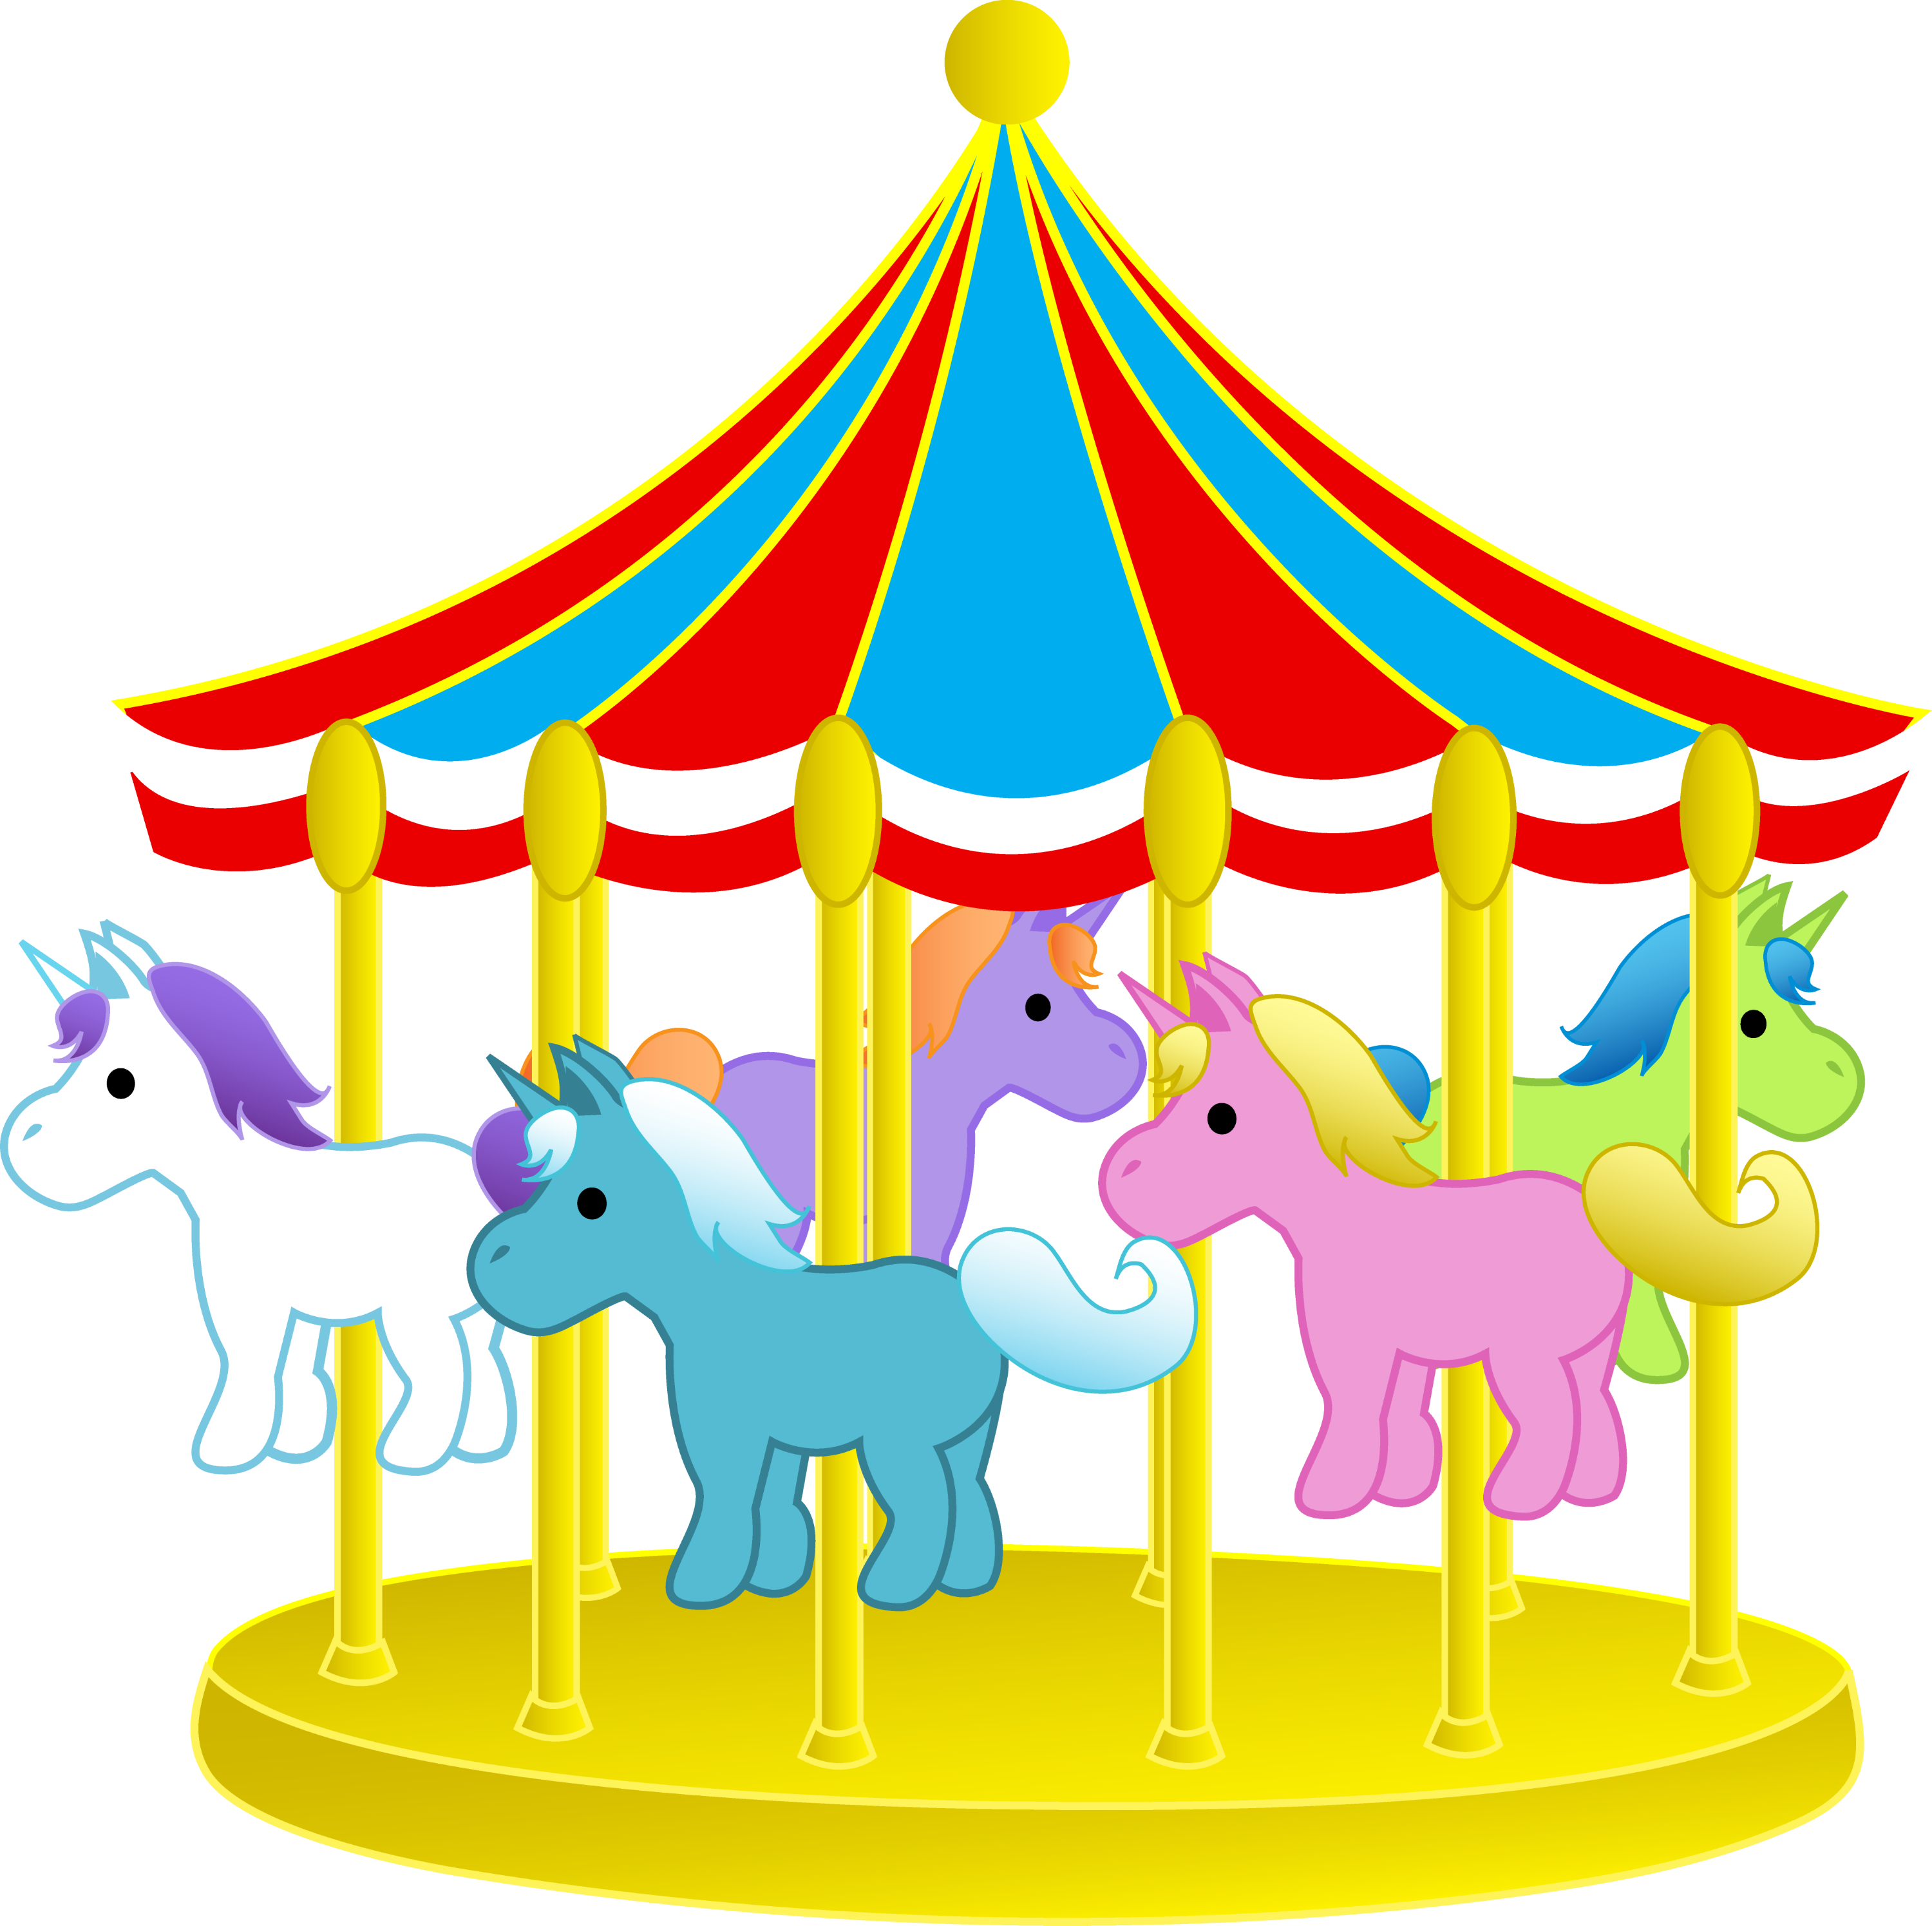 cute carnival carousel with ponies free clip art rh sweetclipart com carousel clip art images carousel clipart